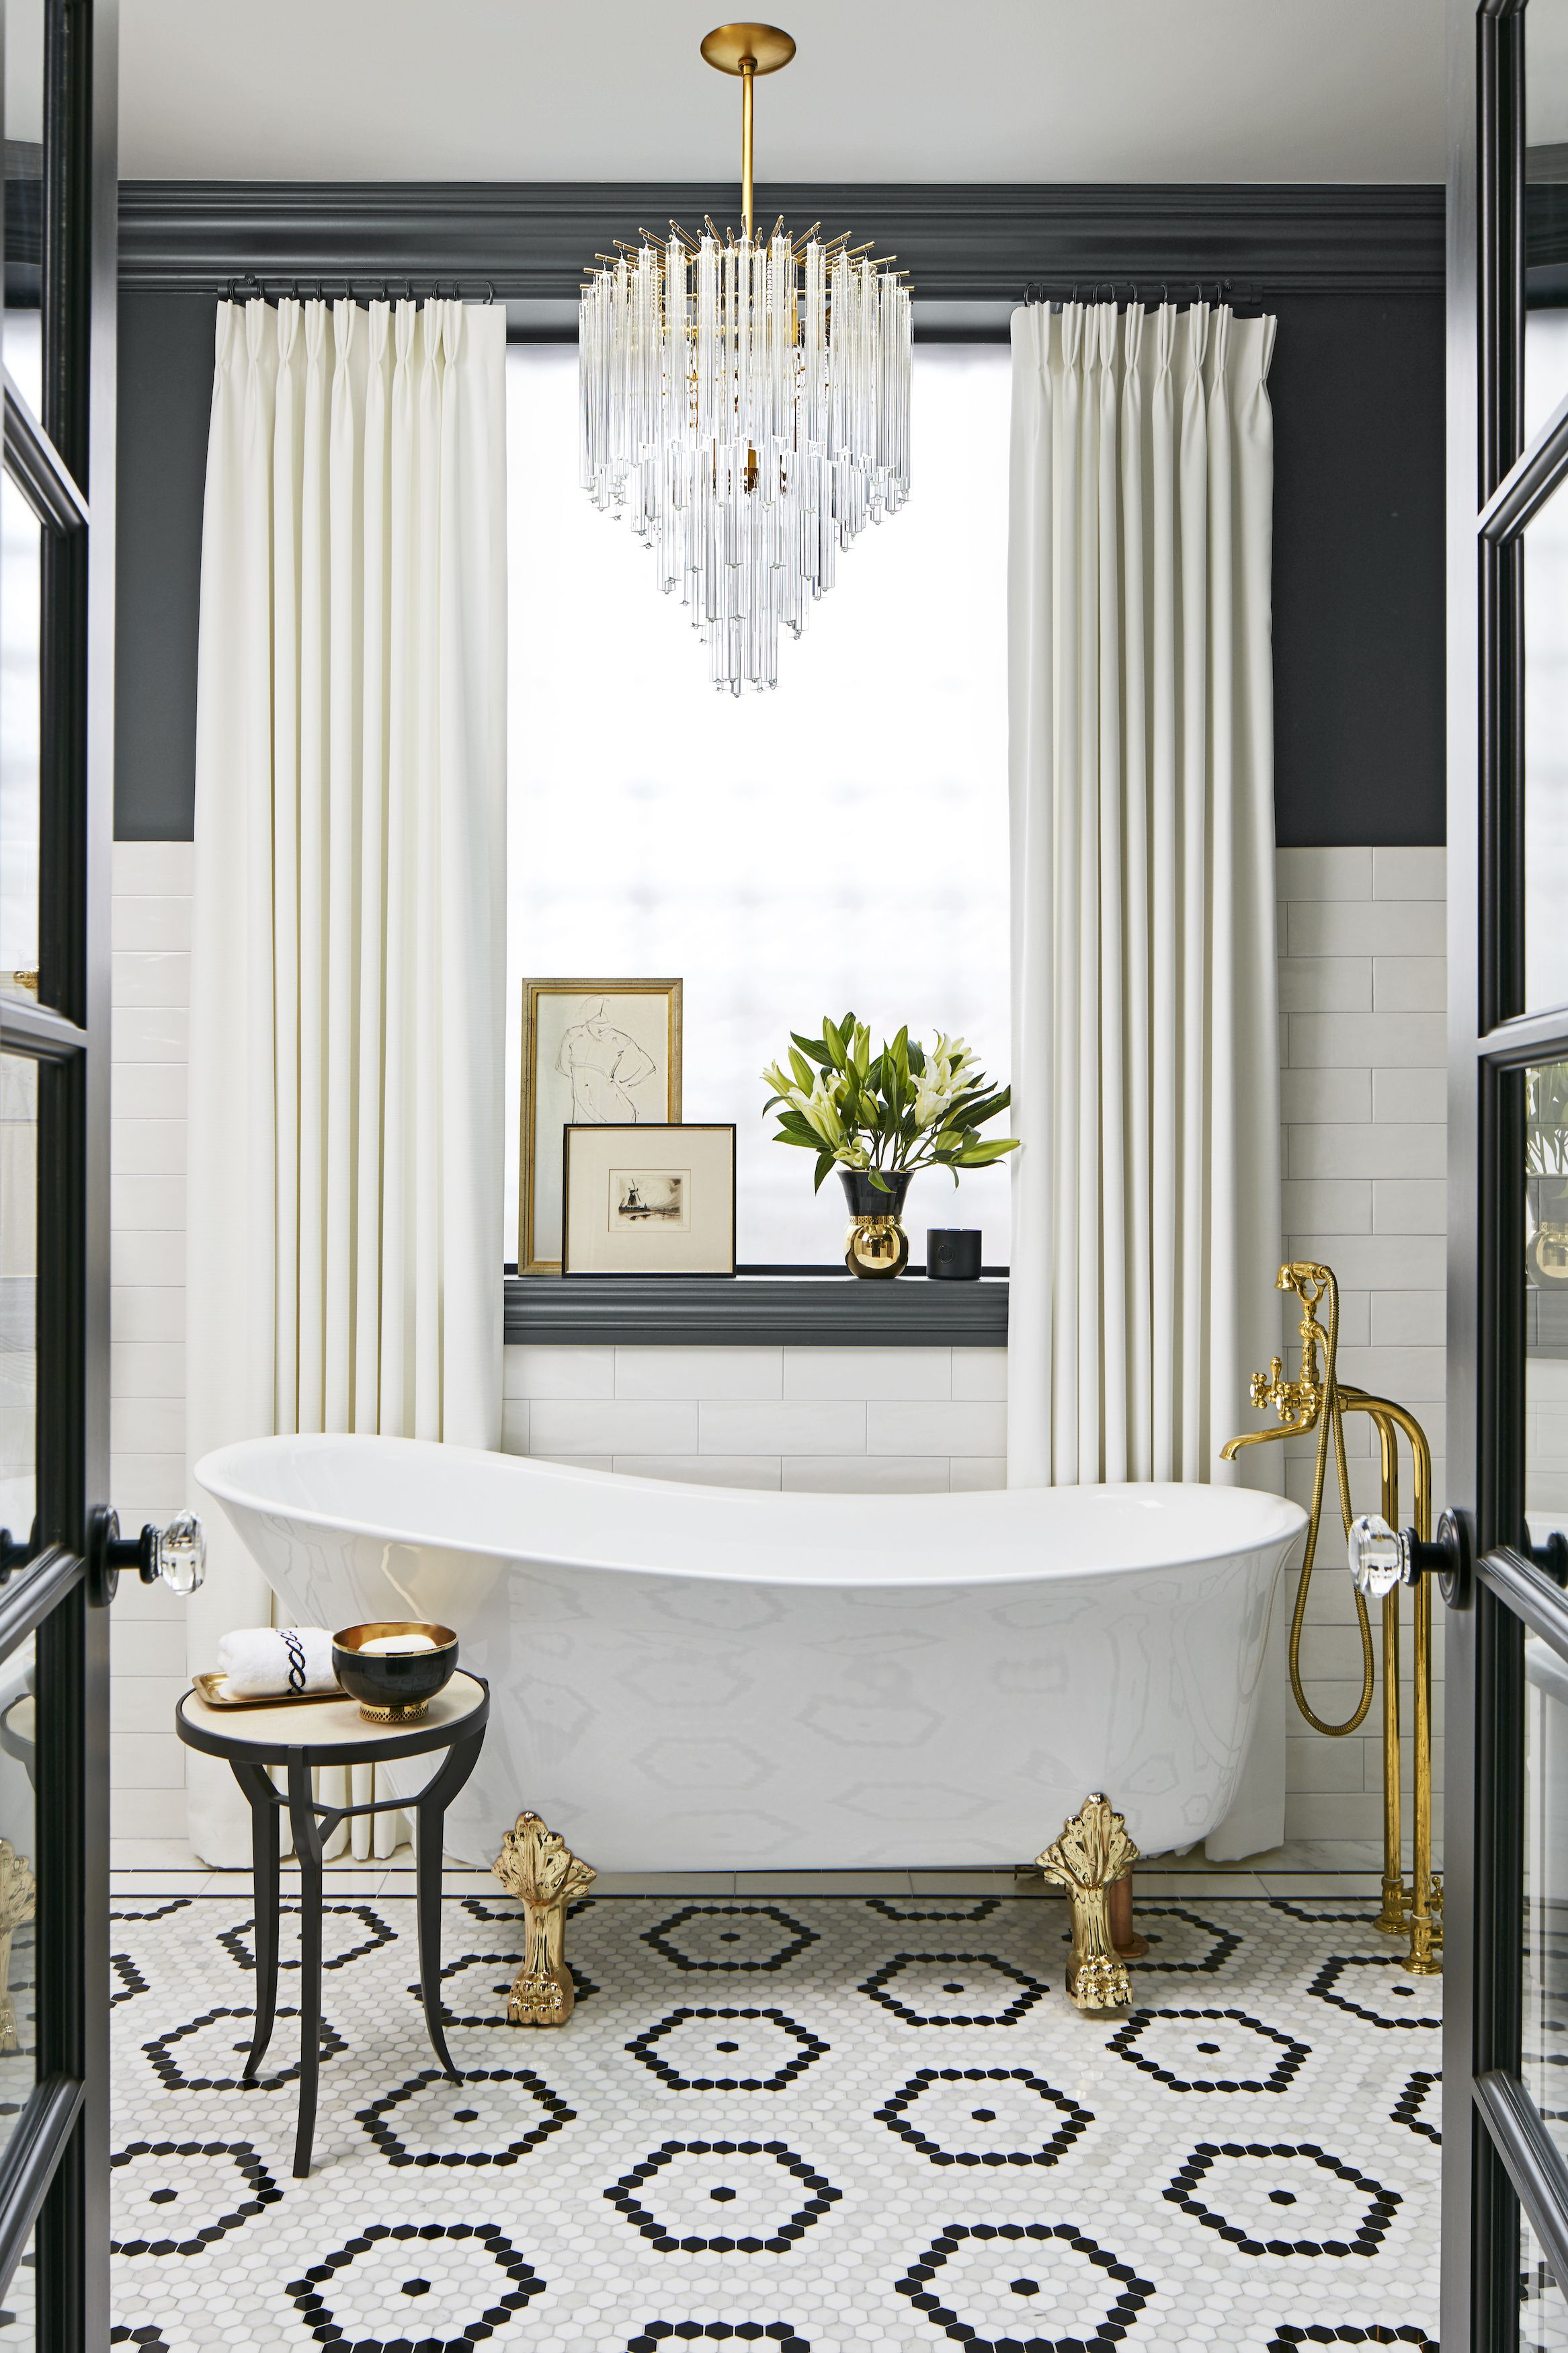 Black And White Bathroom Wall Color Ideas 12 best bathroom paint colors - popular ideas for bathroom wall colors